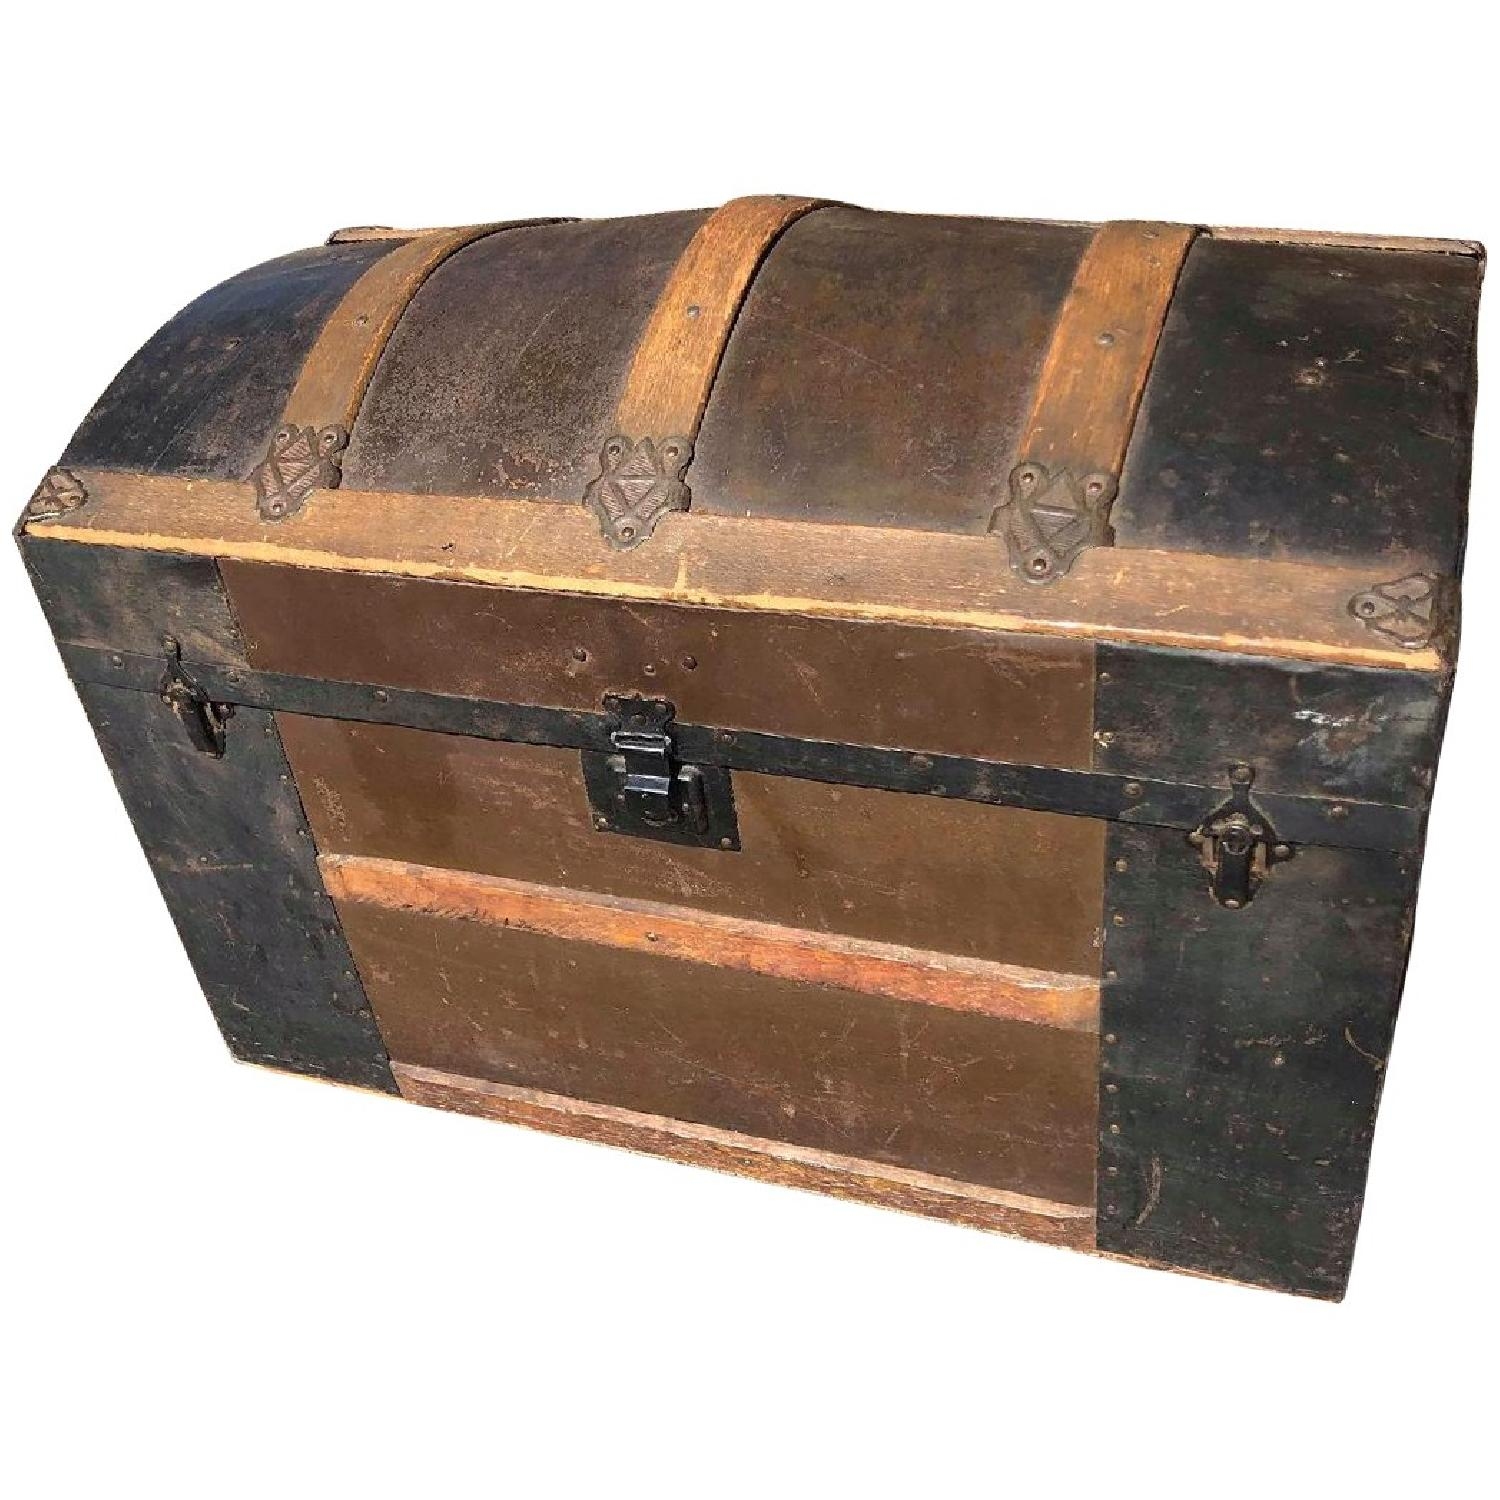 Antique 19th Century Dome Top Storage Trunk w/ Wheels - image-0